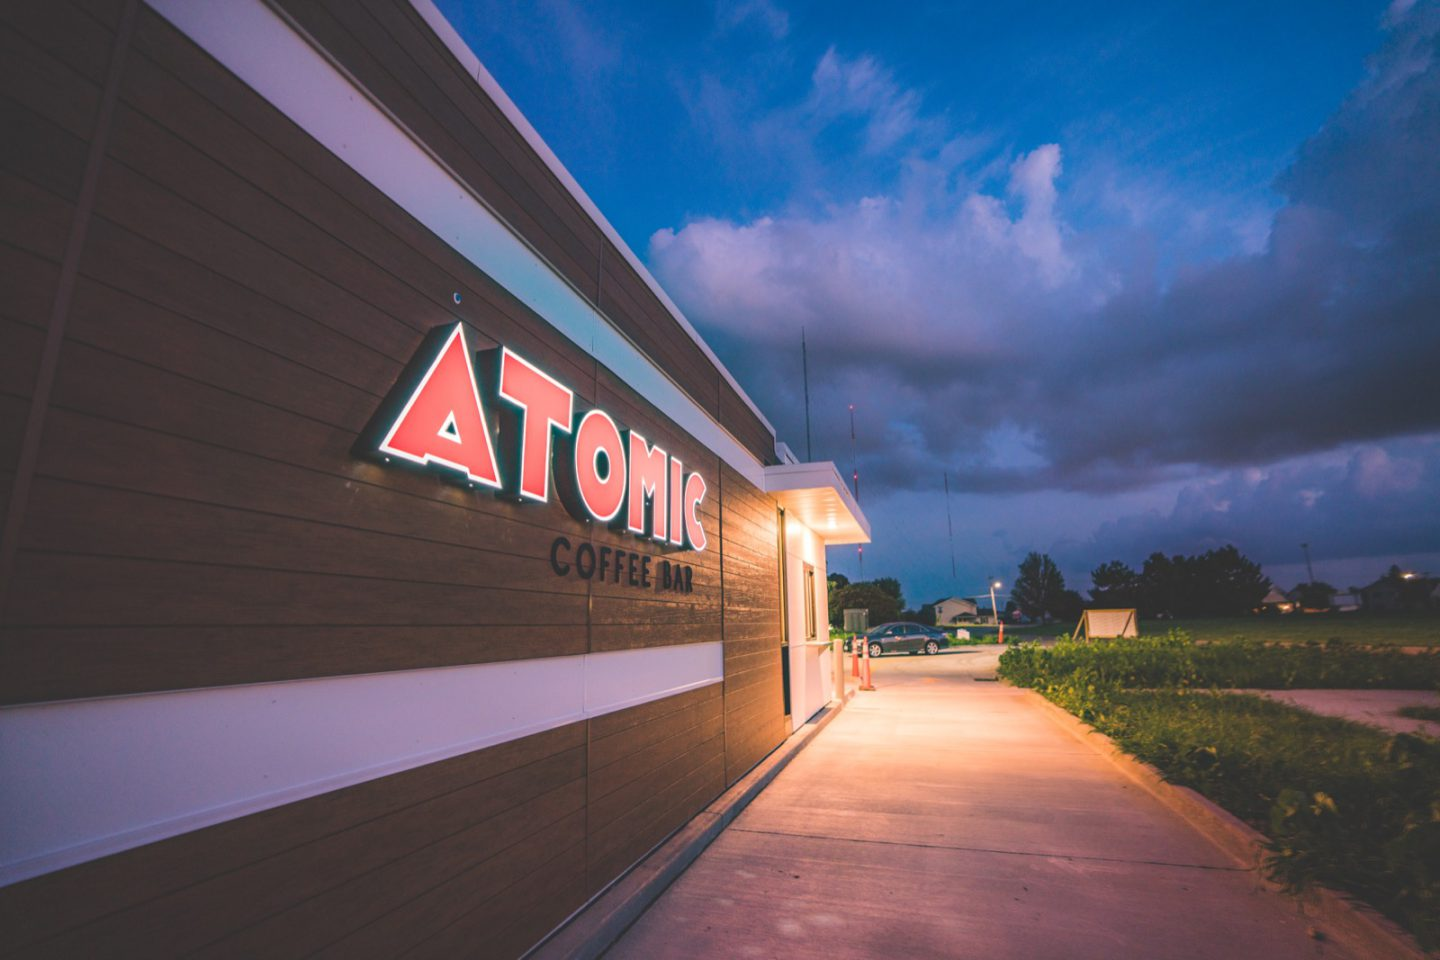 Atomic Coffee stand side view with logo